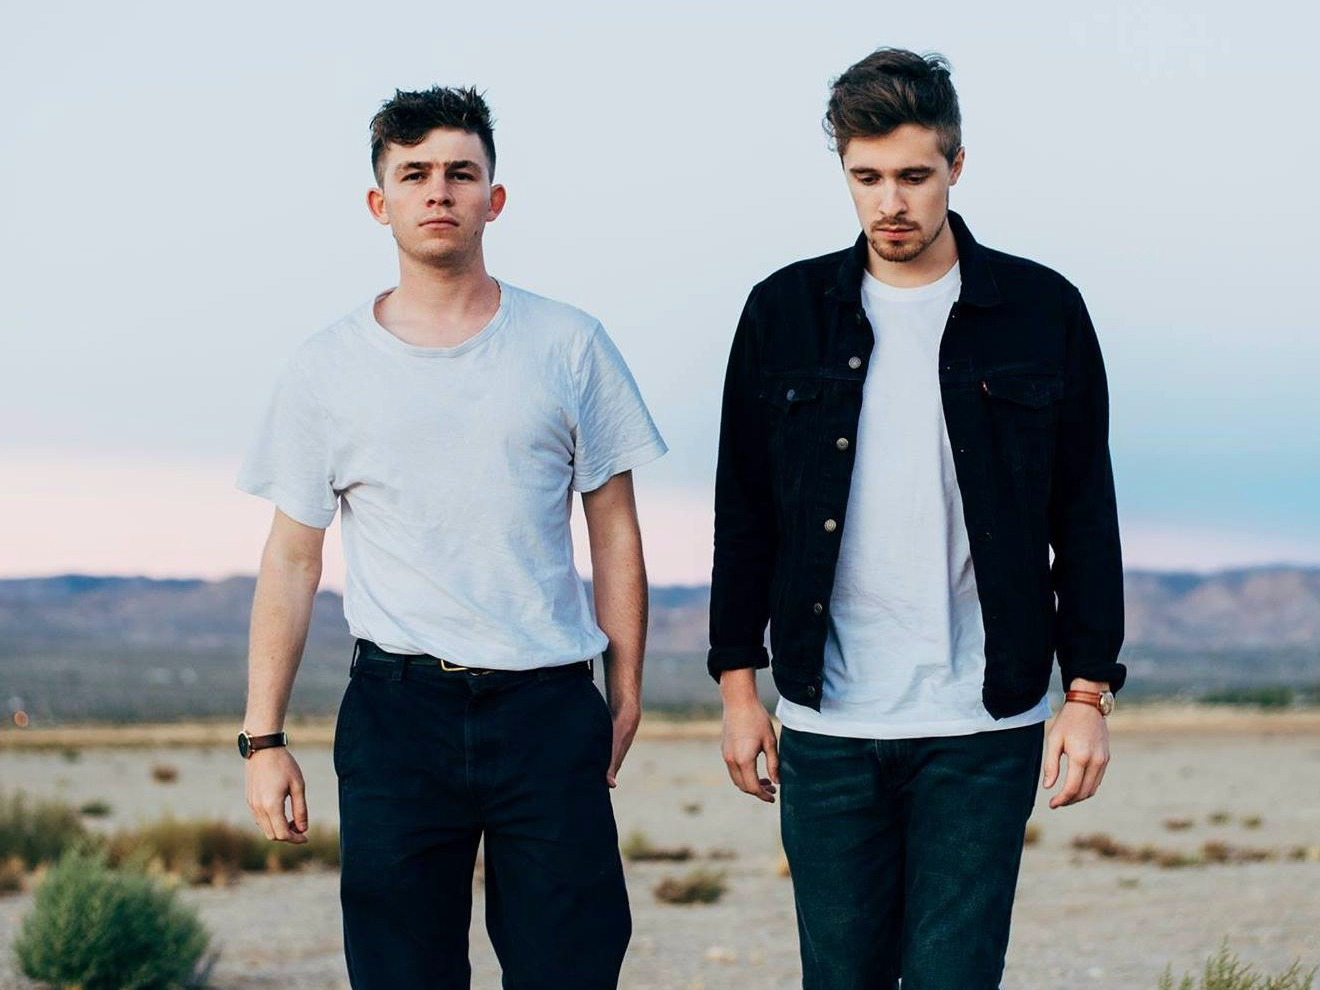 SONG OF THE DAY: 'Who Are You' by Aquilo